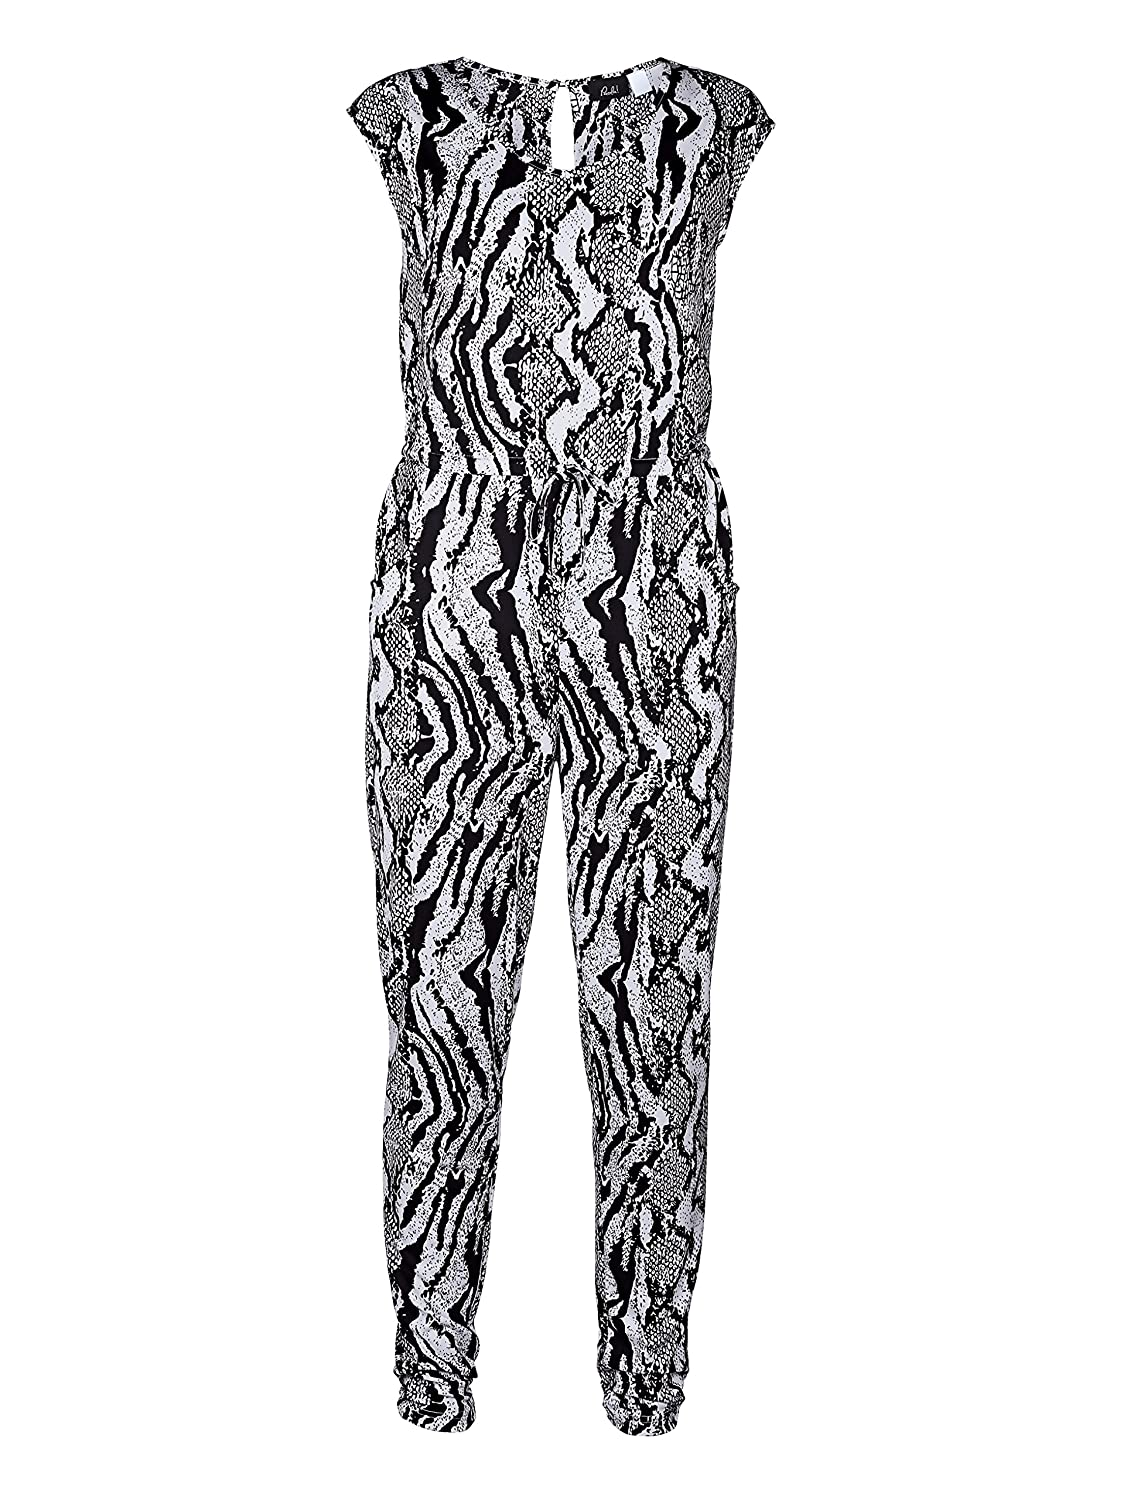 Damen Overall mit Animalprint by Paola